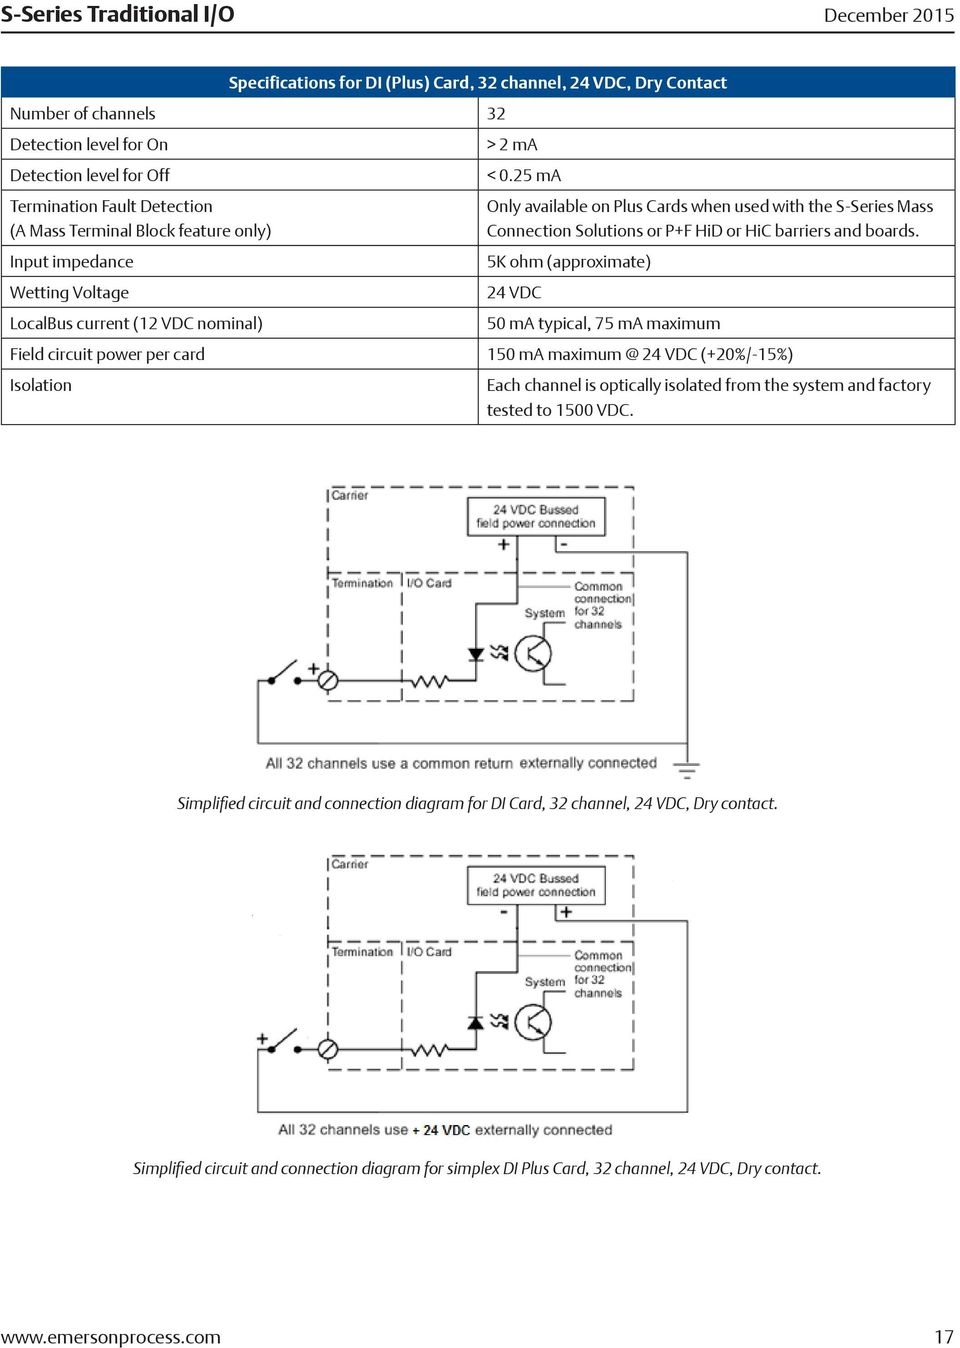 Deltav S Series Traditional I O Pdf Wiring Diagrams Terminal Blocks 25 Ma Only Available On Plus Cards When Used With The Mass Connection